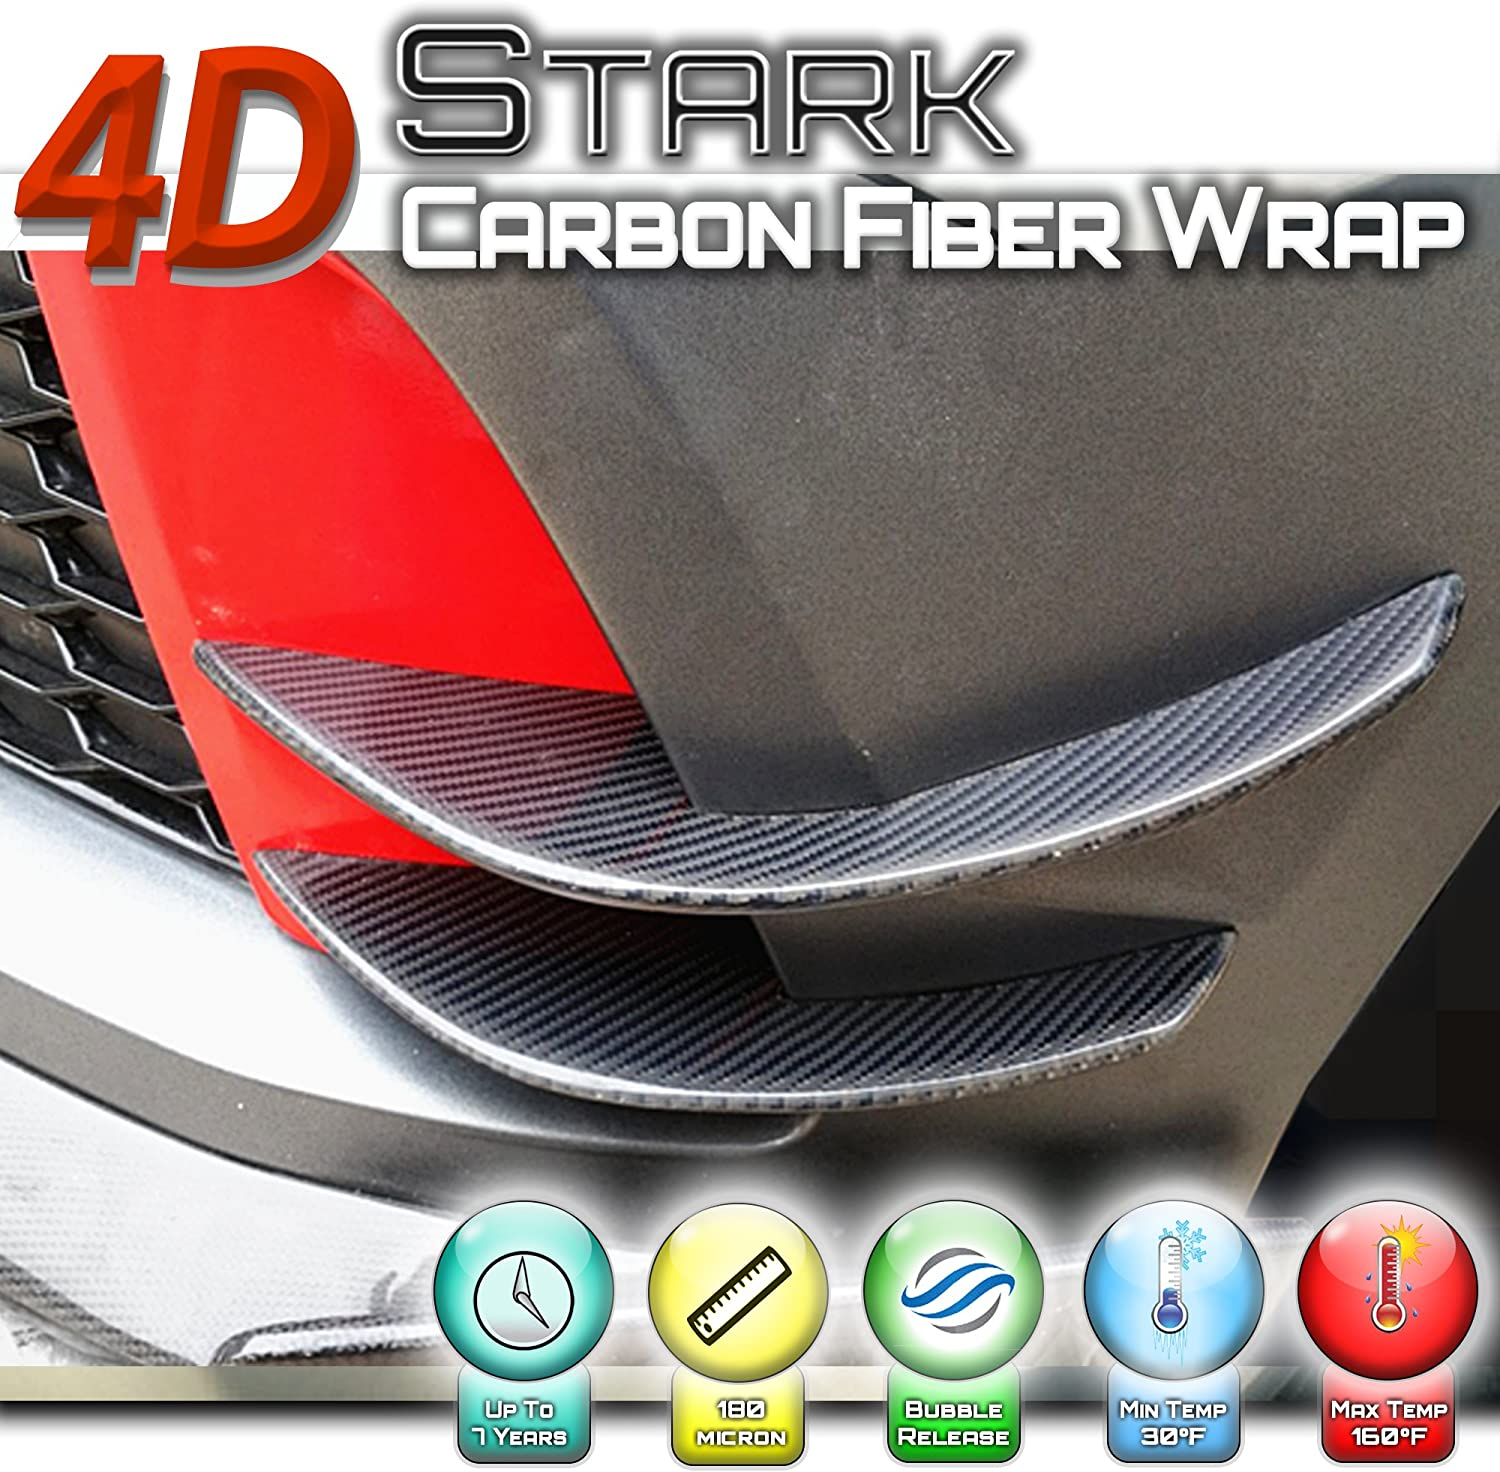 12 x 60 IN Inches 4D Black Carbon Fiber Vinyl Wrap Sticker Air Release Bubble Free Anti-Wrinkle 1 x 5 FT Feet